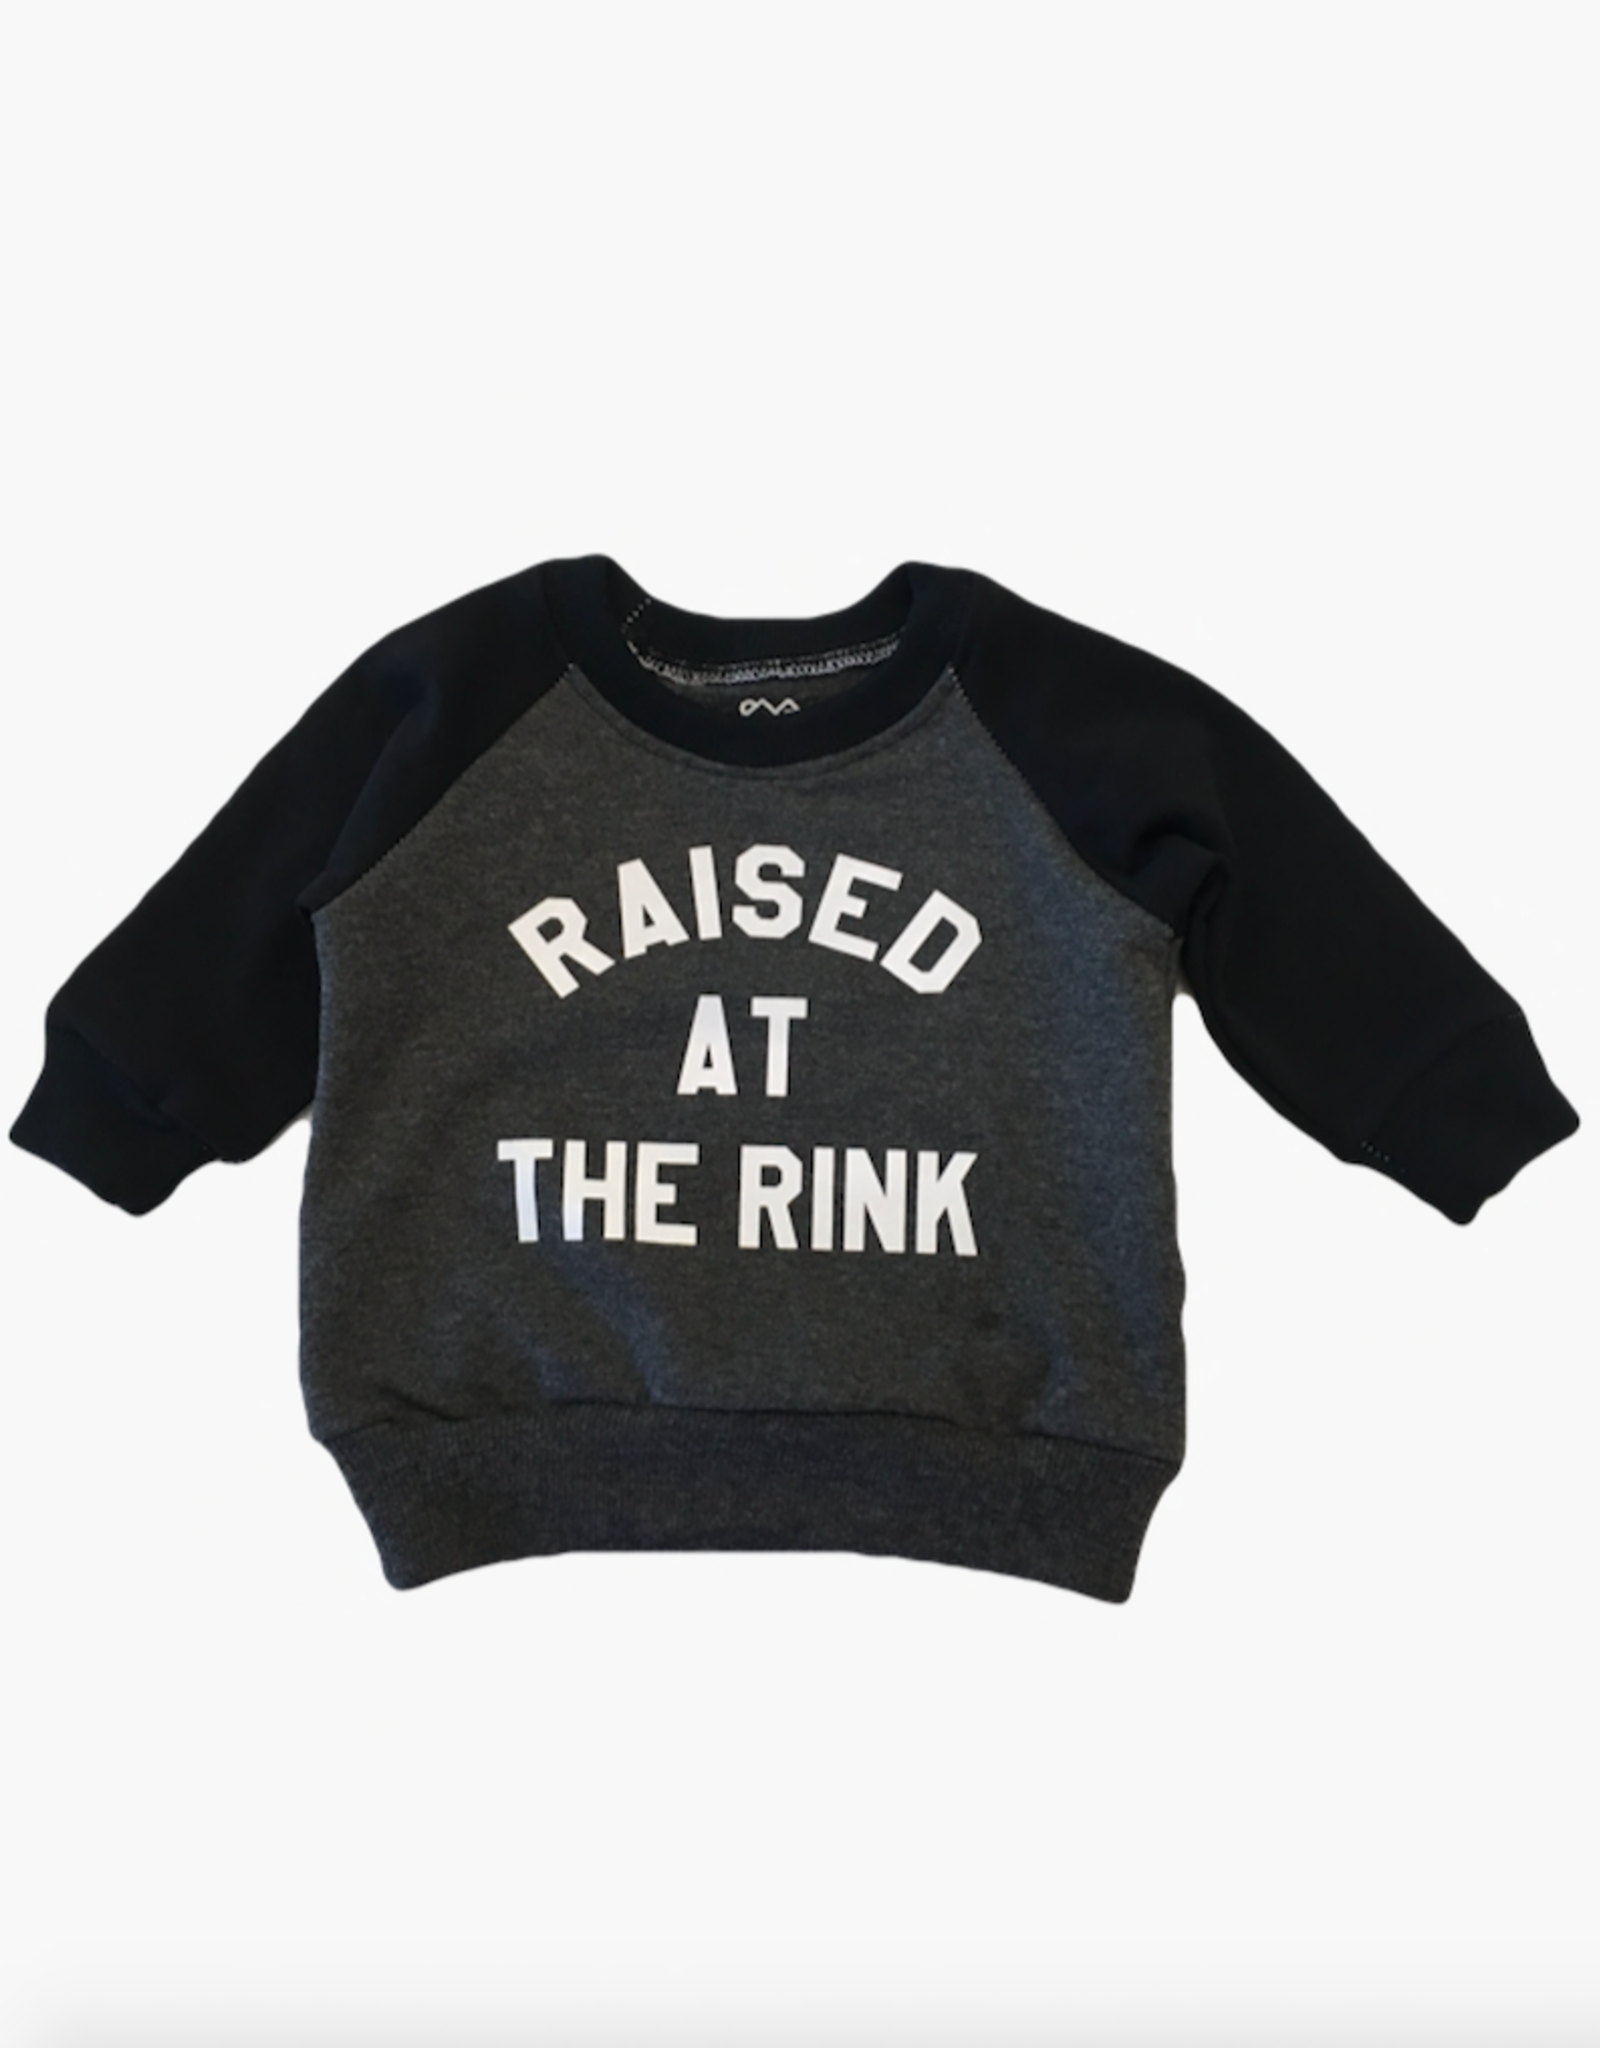 Portage & Main Raised at the Rink Sweatshirt in Charcoal/Black